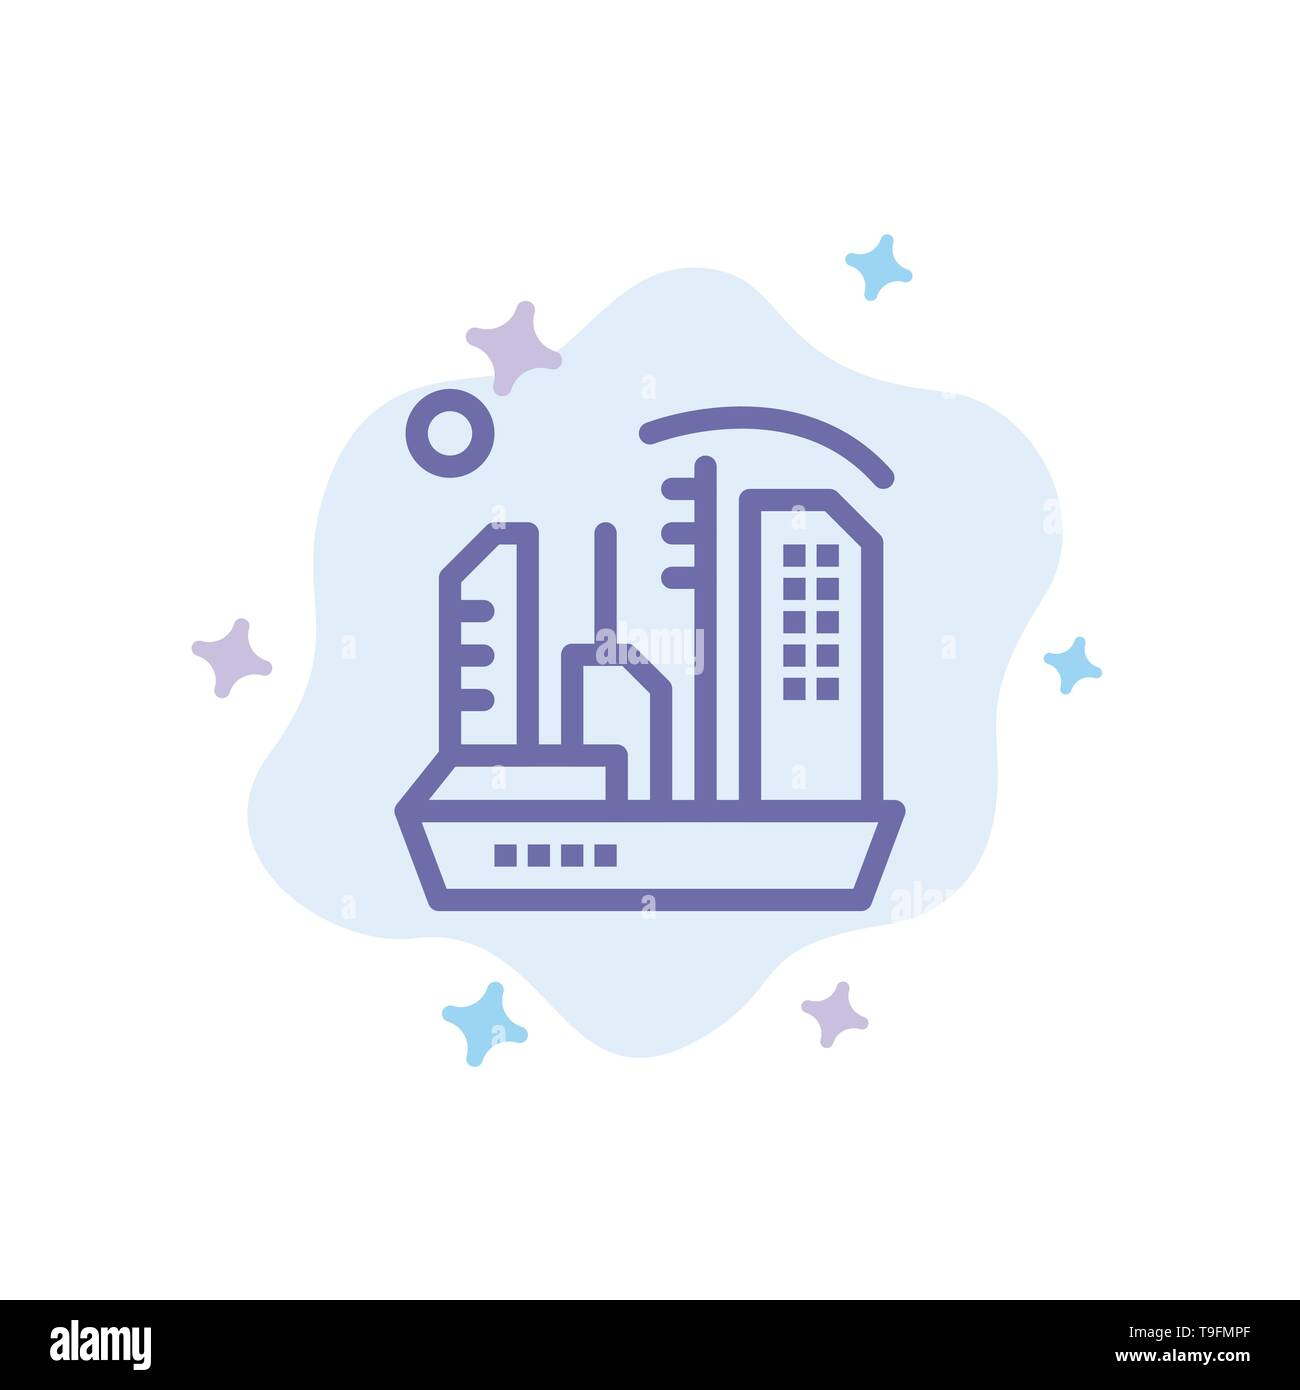 City, Colonization, Colony, Dome, Expansion Blue Icon on Abstract Cloud Background Stock Vector